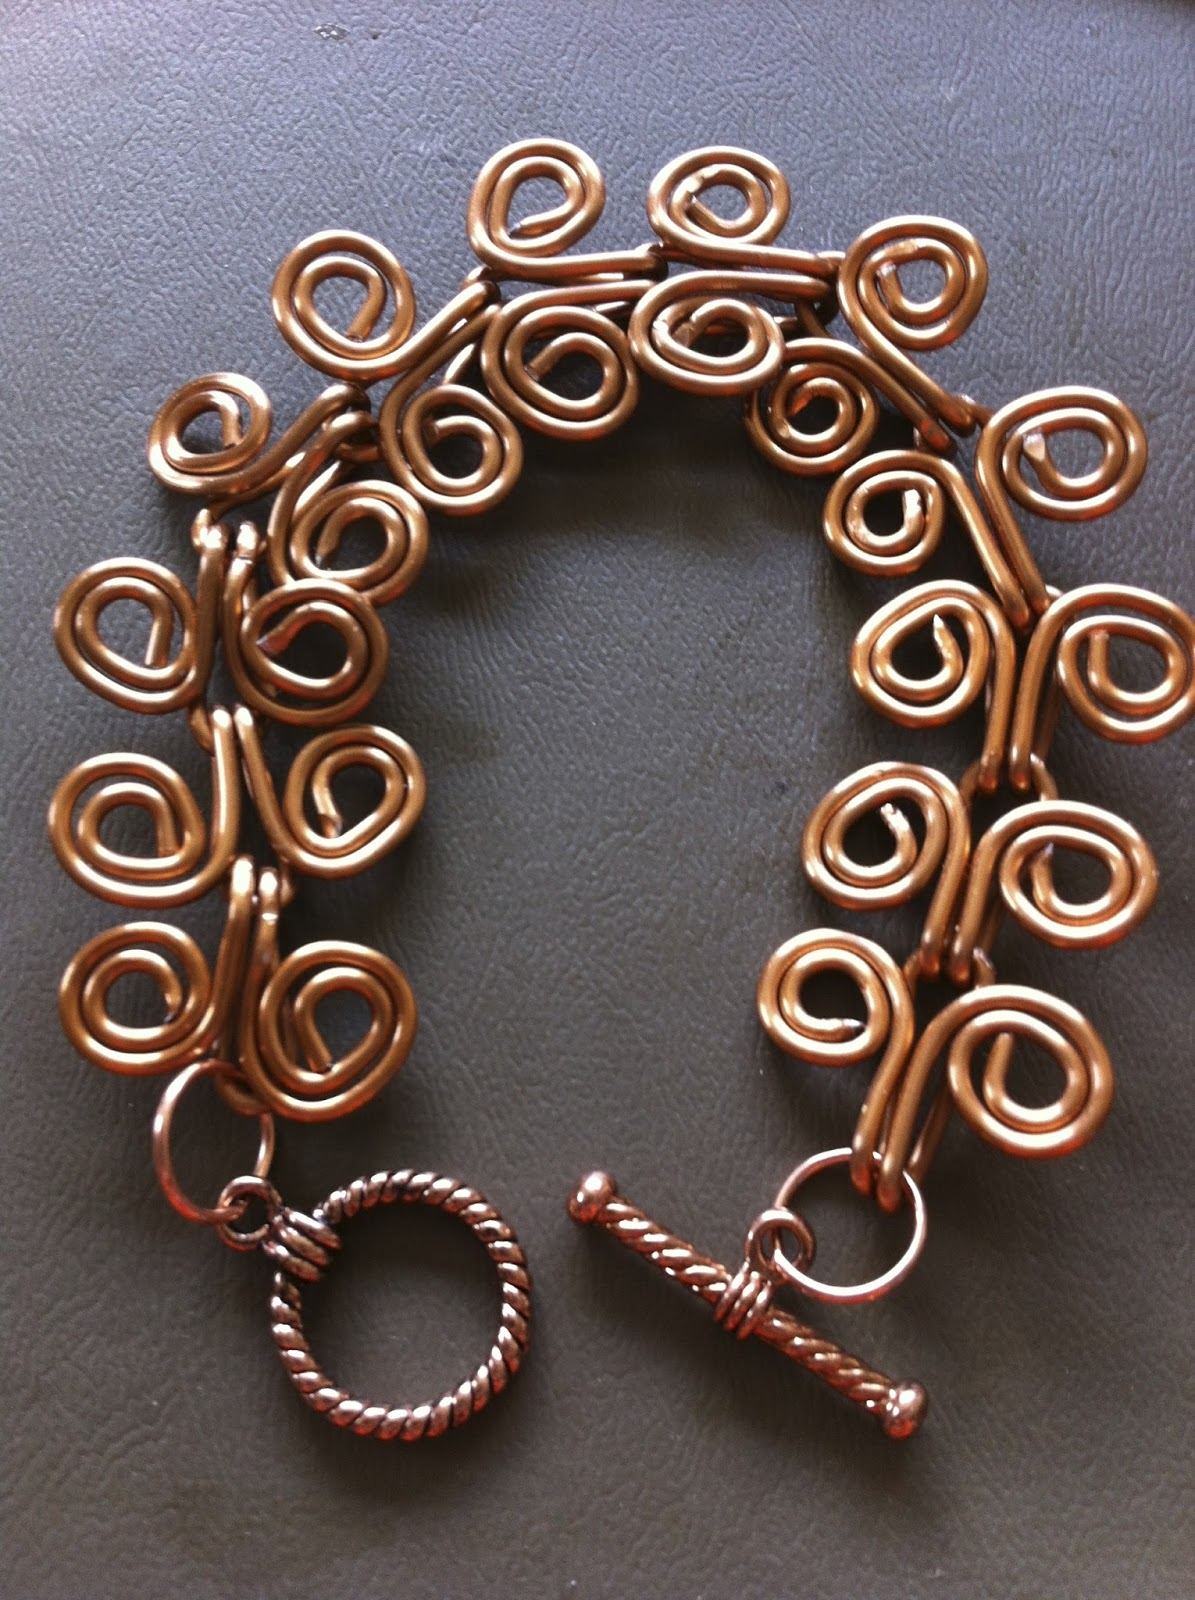 AptToCraft: Zig zags, twists and loops for wire jig earrings